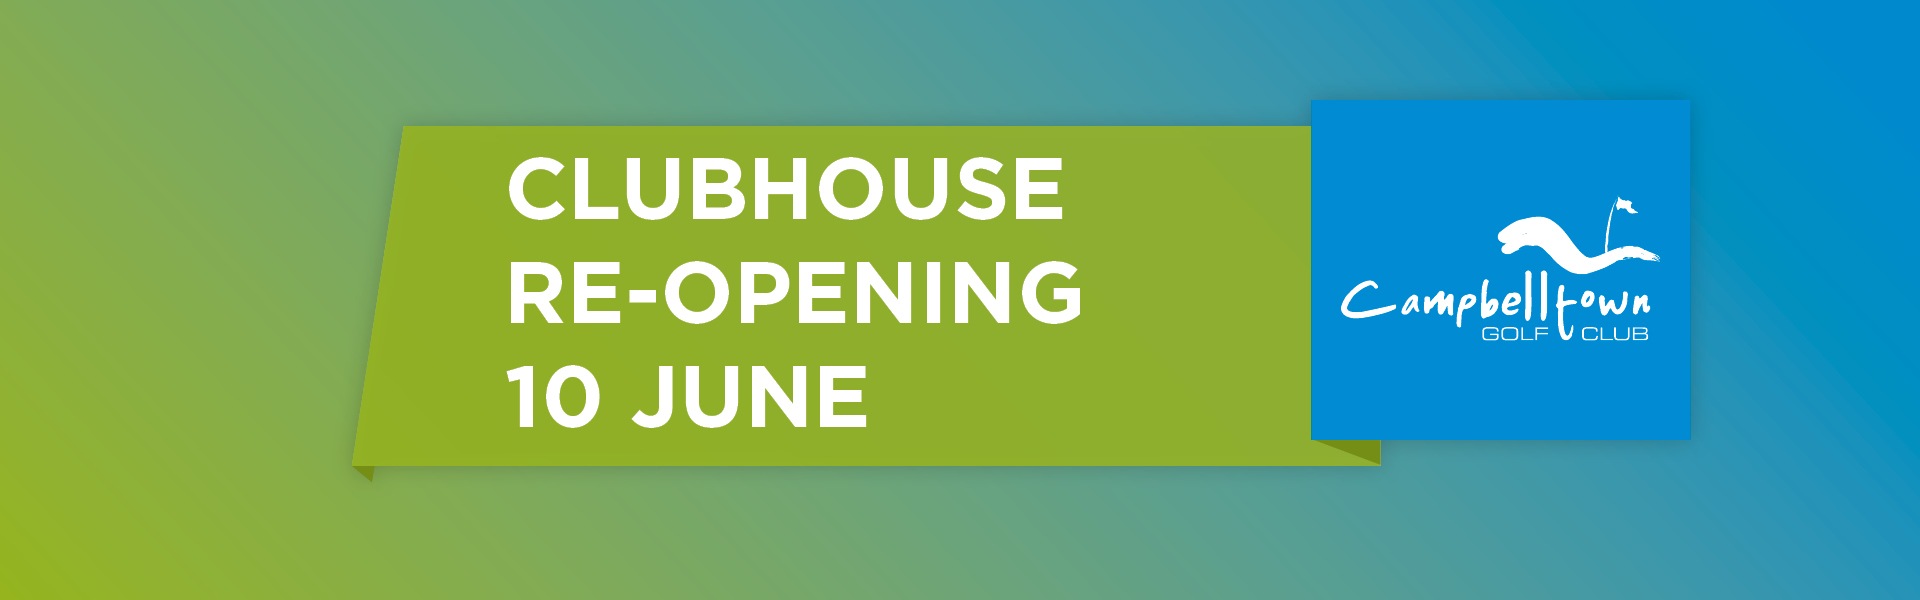 Clubhouse Reopening 10 June 2020 !